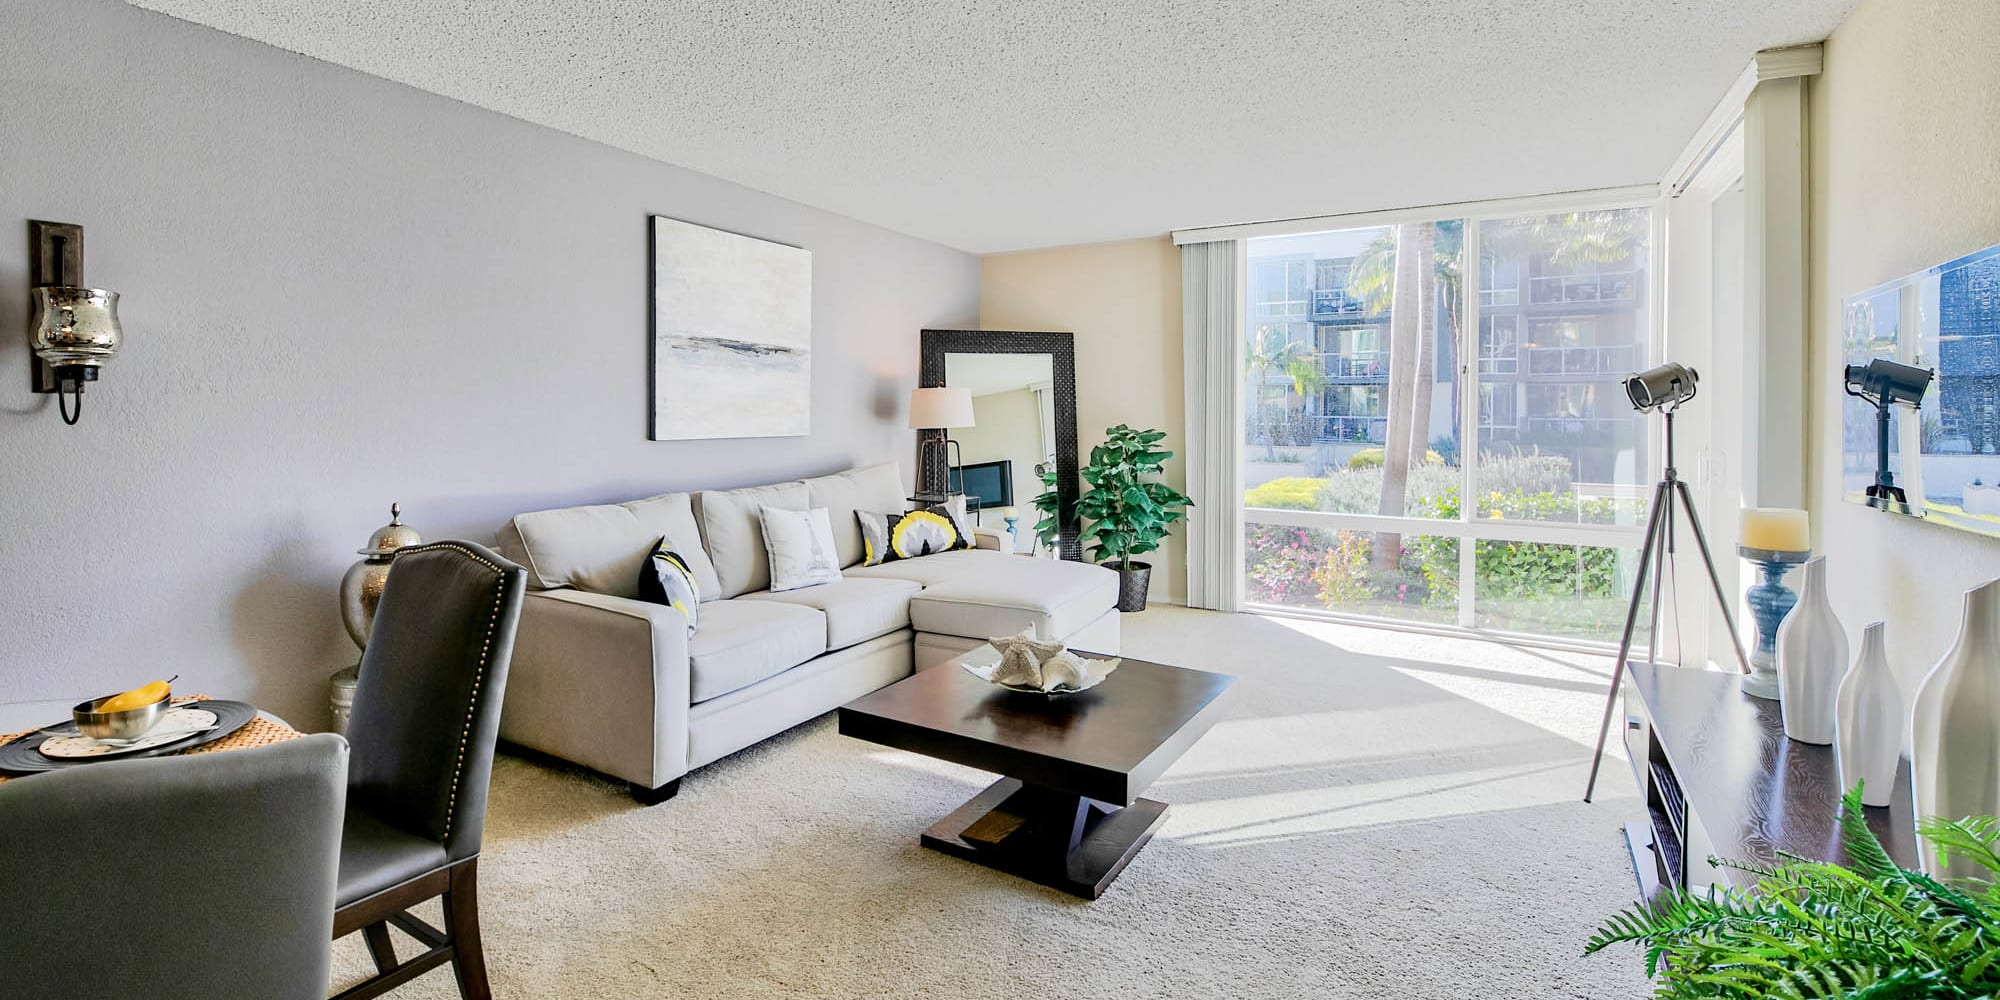 Plush carpeting in the living space of a model home at Waters Edge at Marina Harbor in Marina Del Rey, California